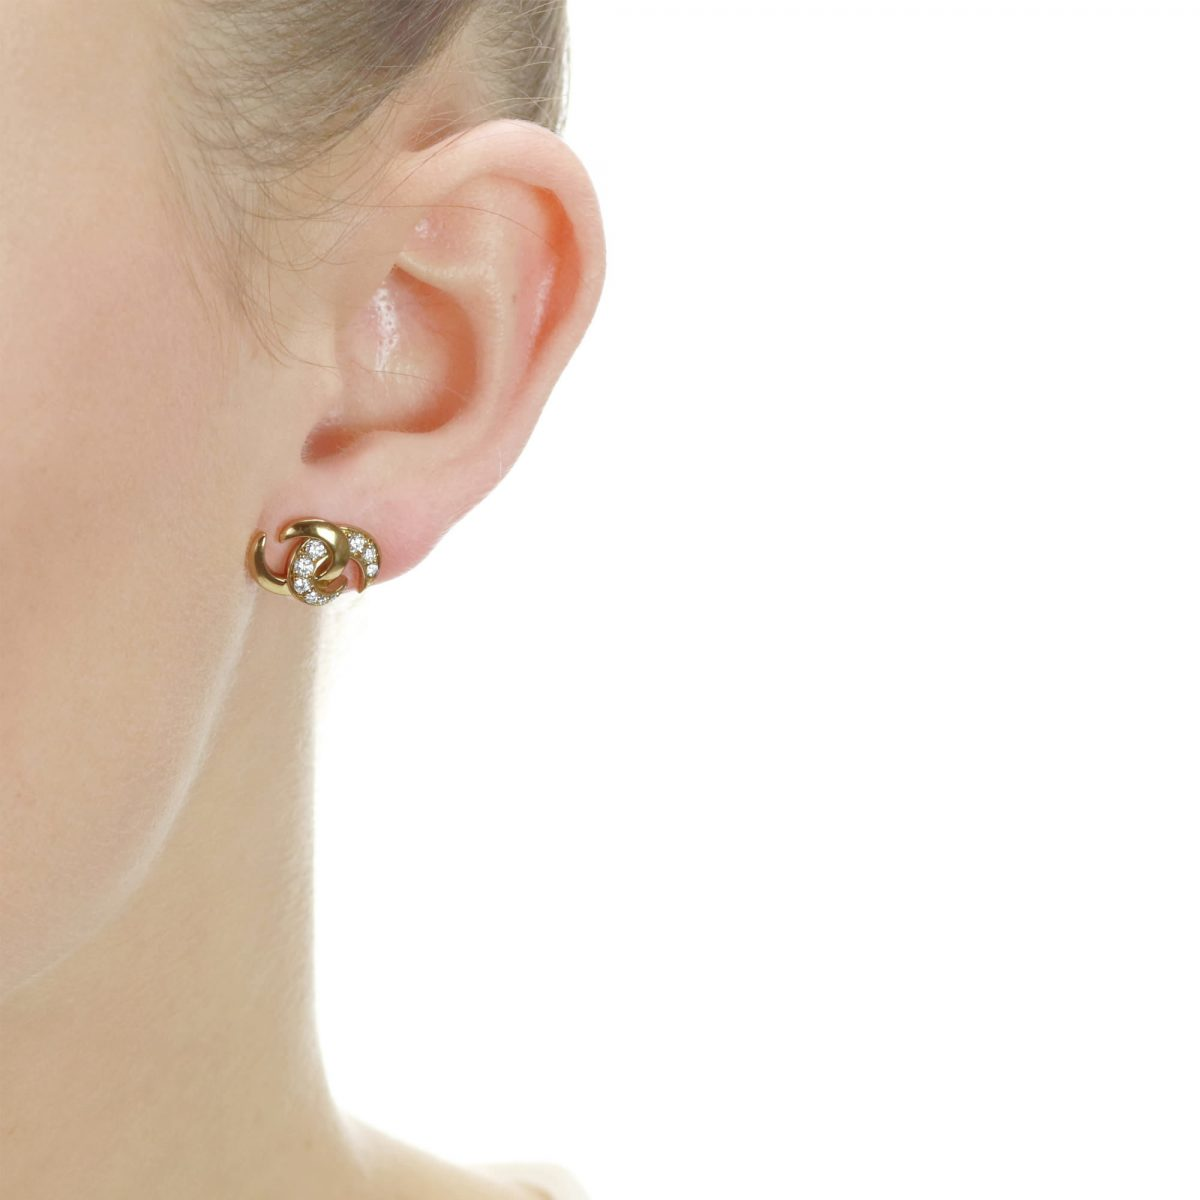 Hooked on You White Gold Diamond Earrings